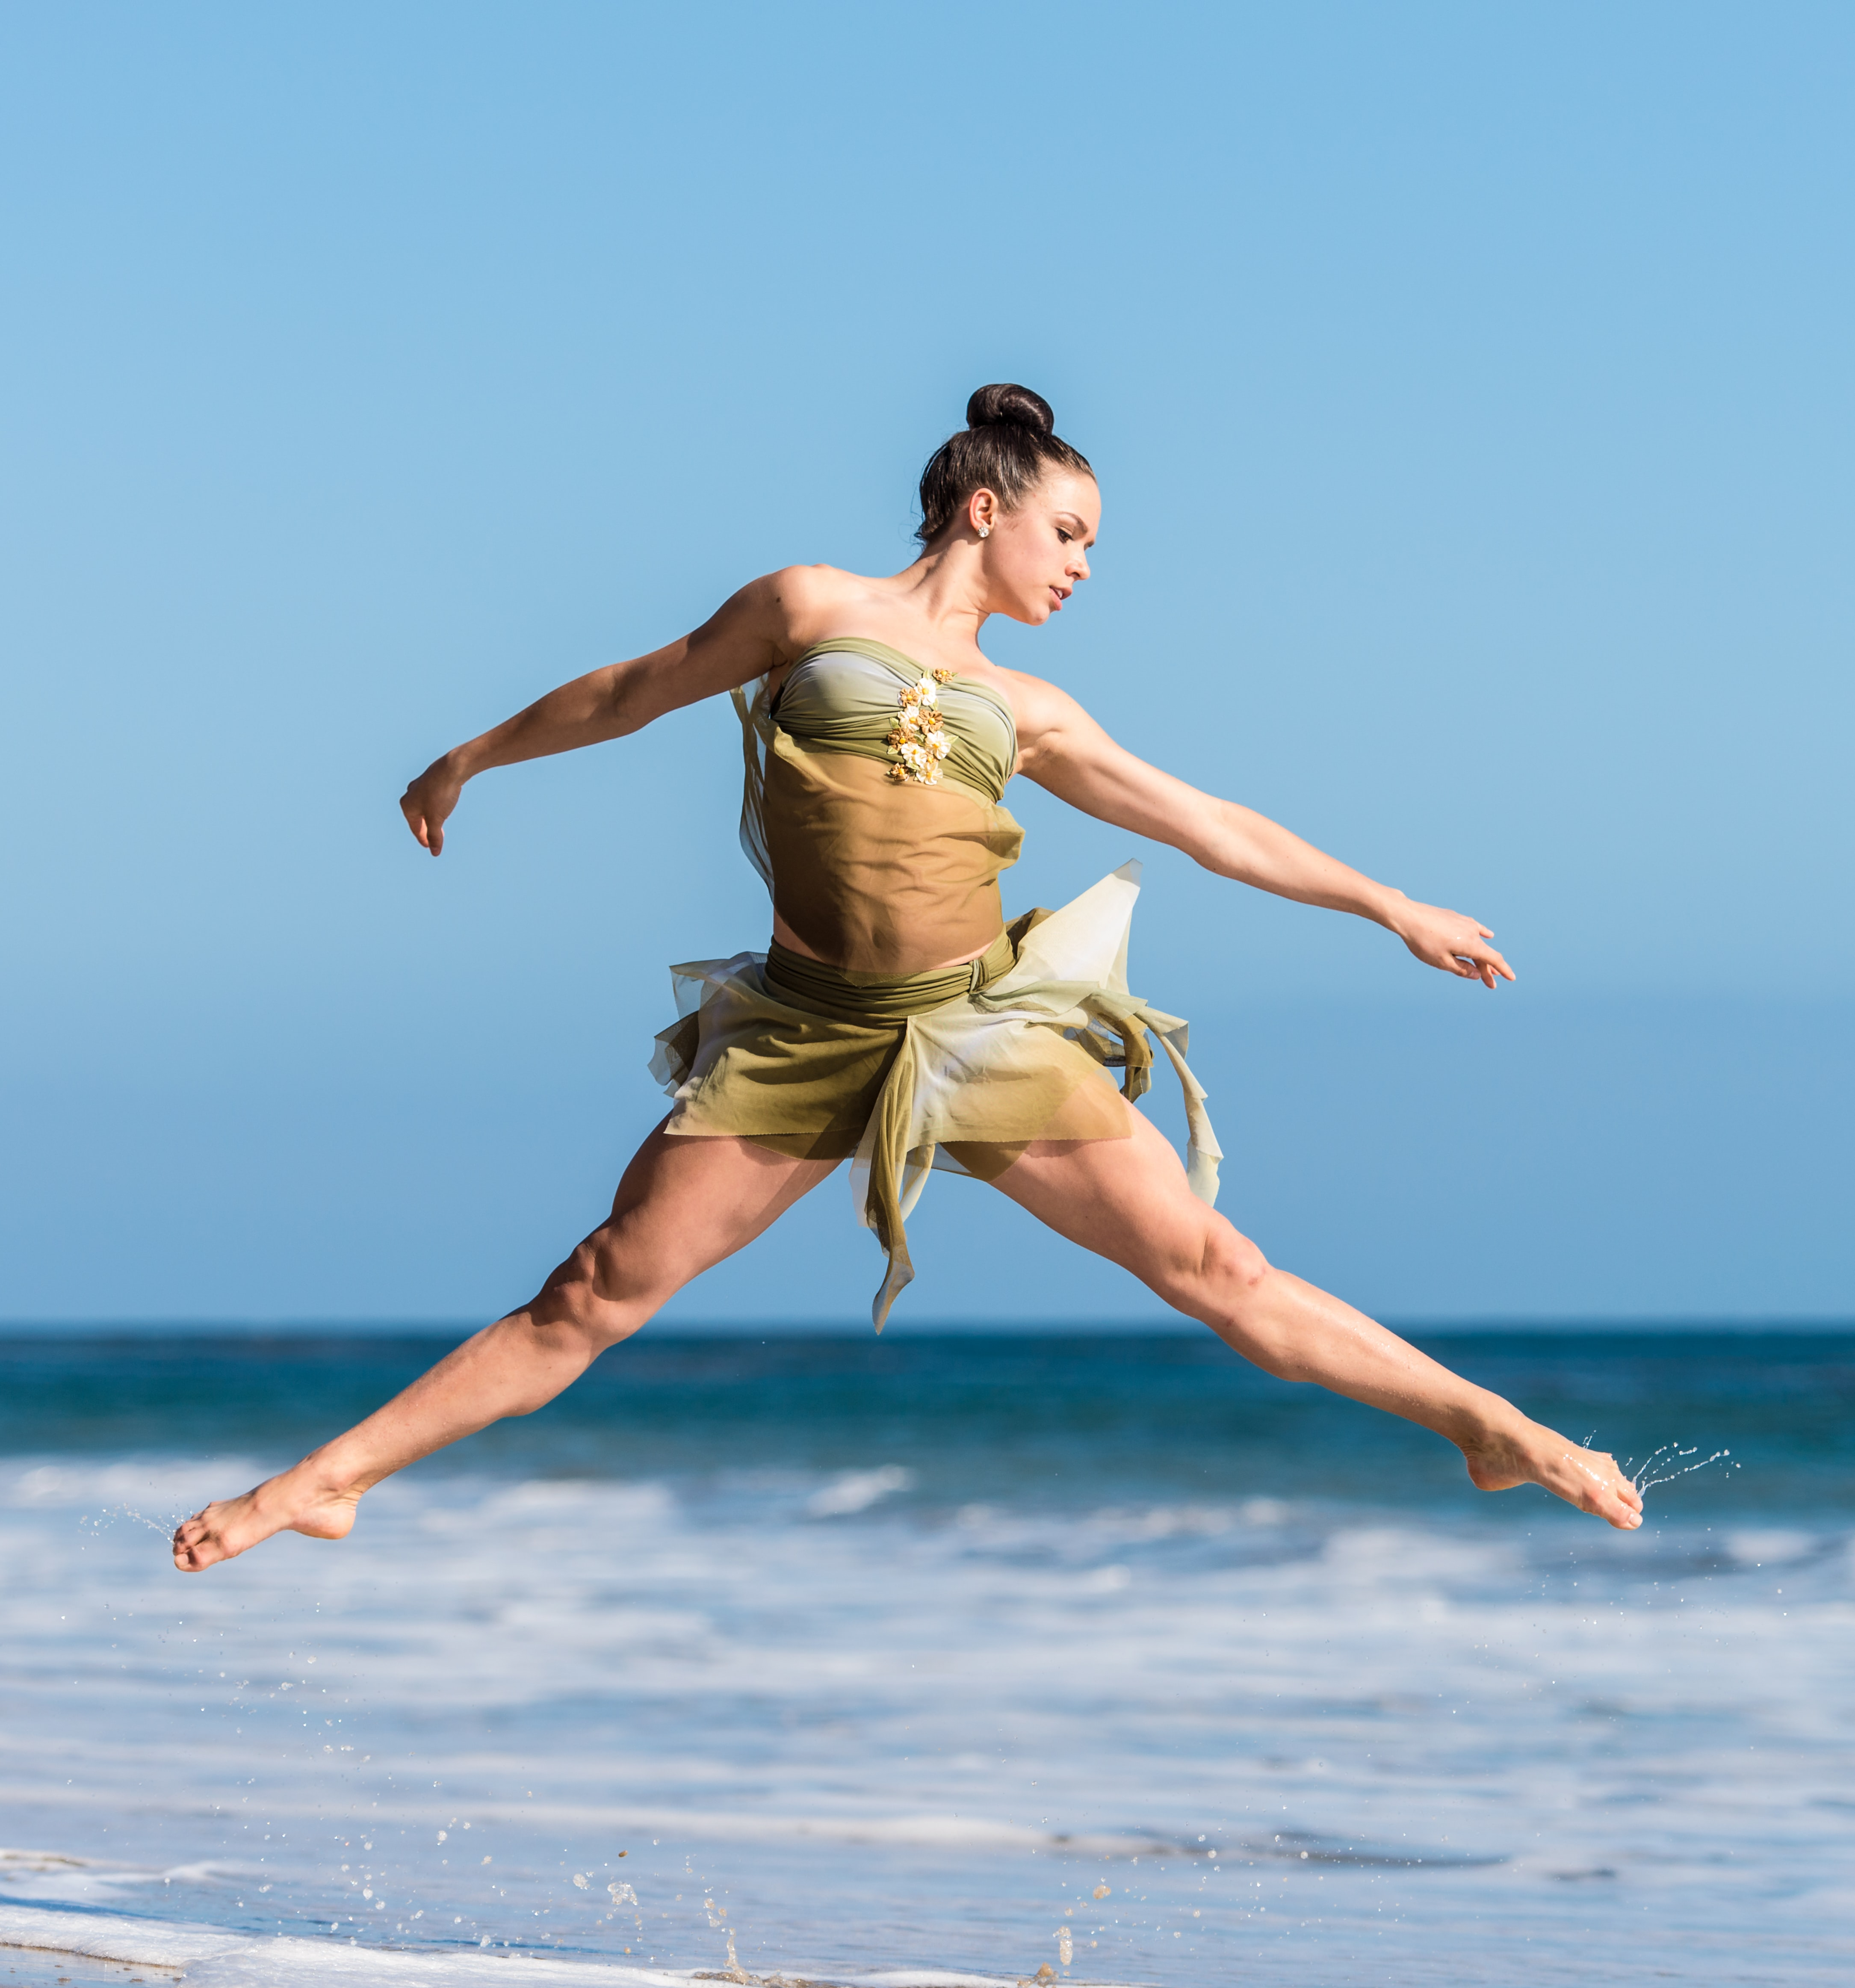 woman dancing beside body of water during daytime